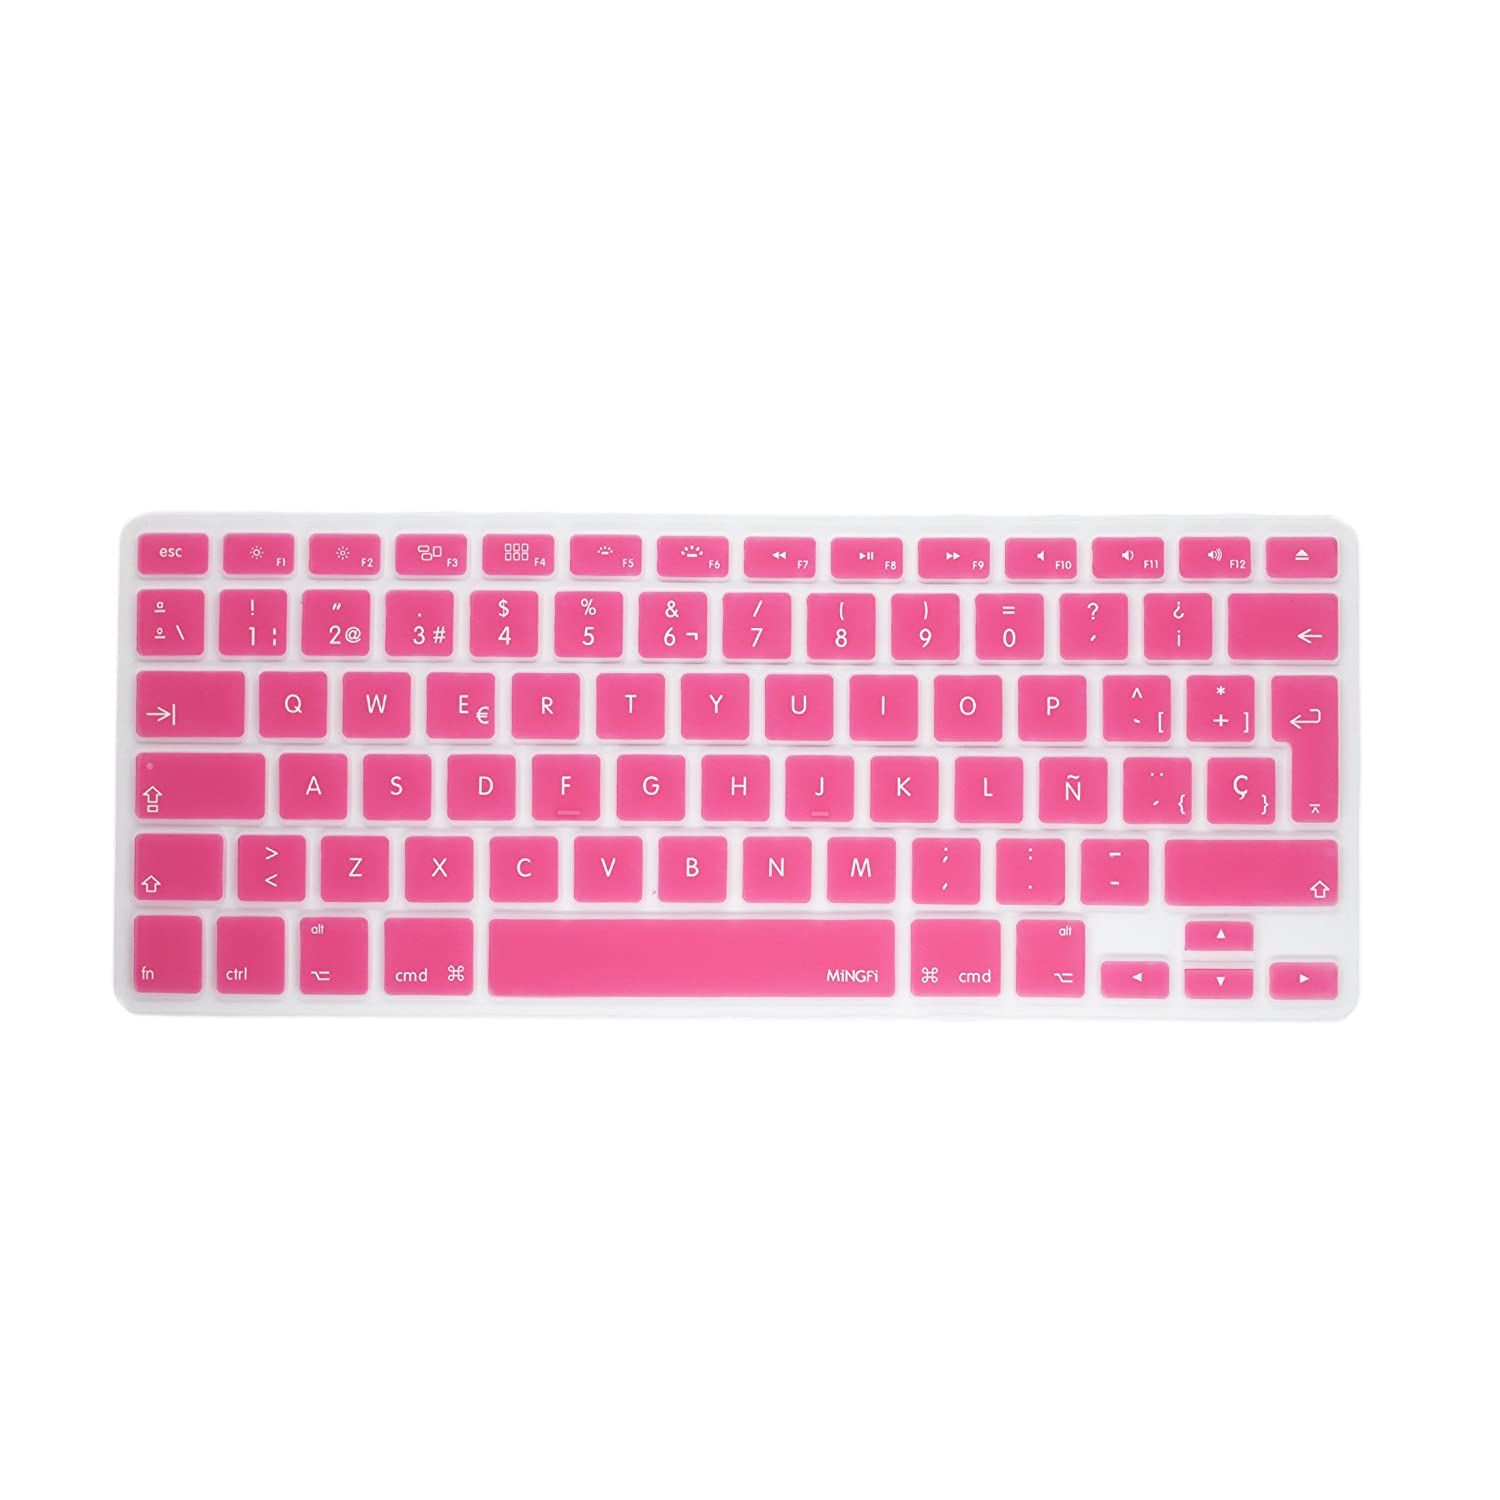 MiNGFi Allemand German Clavier Coque de Protection / Couverture QWERTZ pour MacBook Pro 13' 15' 17' et Air 13' EU/ISO/FR/DE Keyboard Disposition Silicone Skin - Vert au Bleu